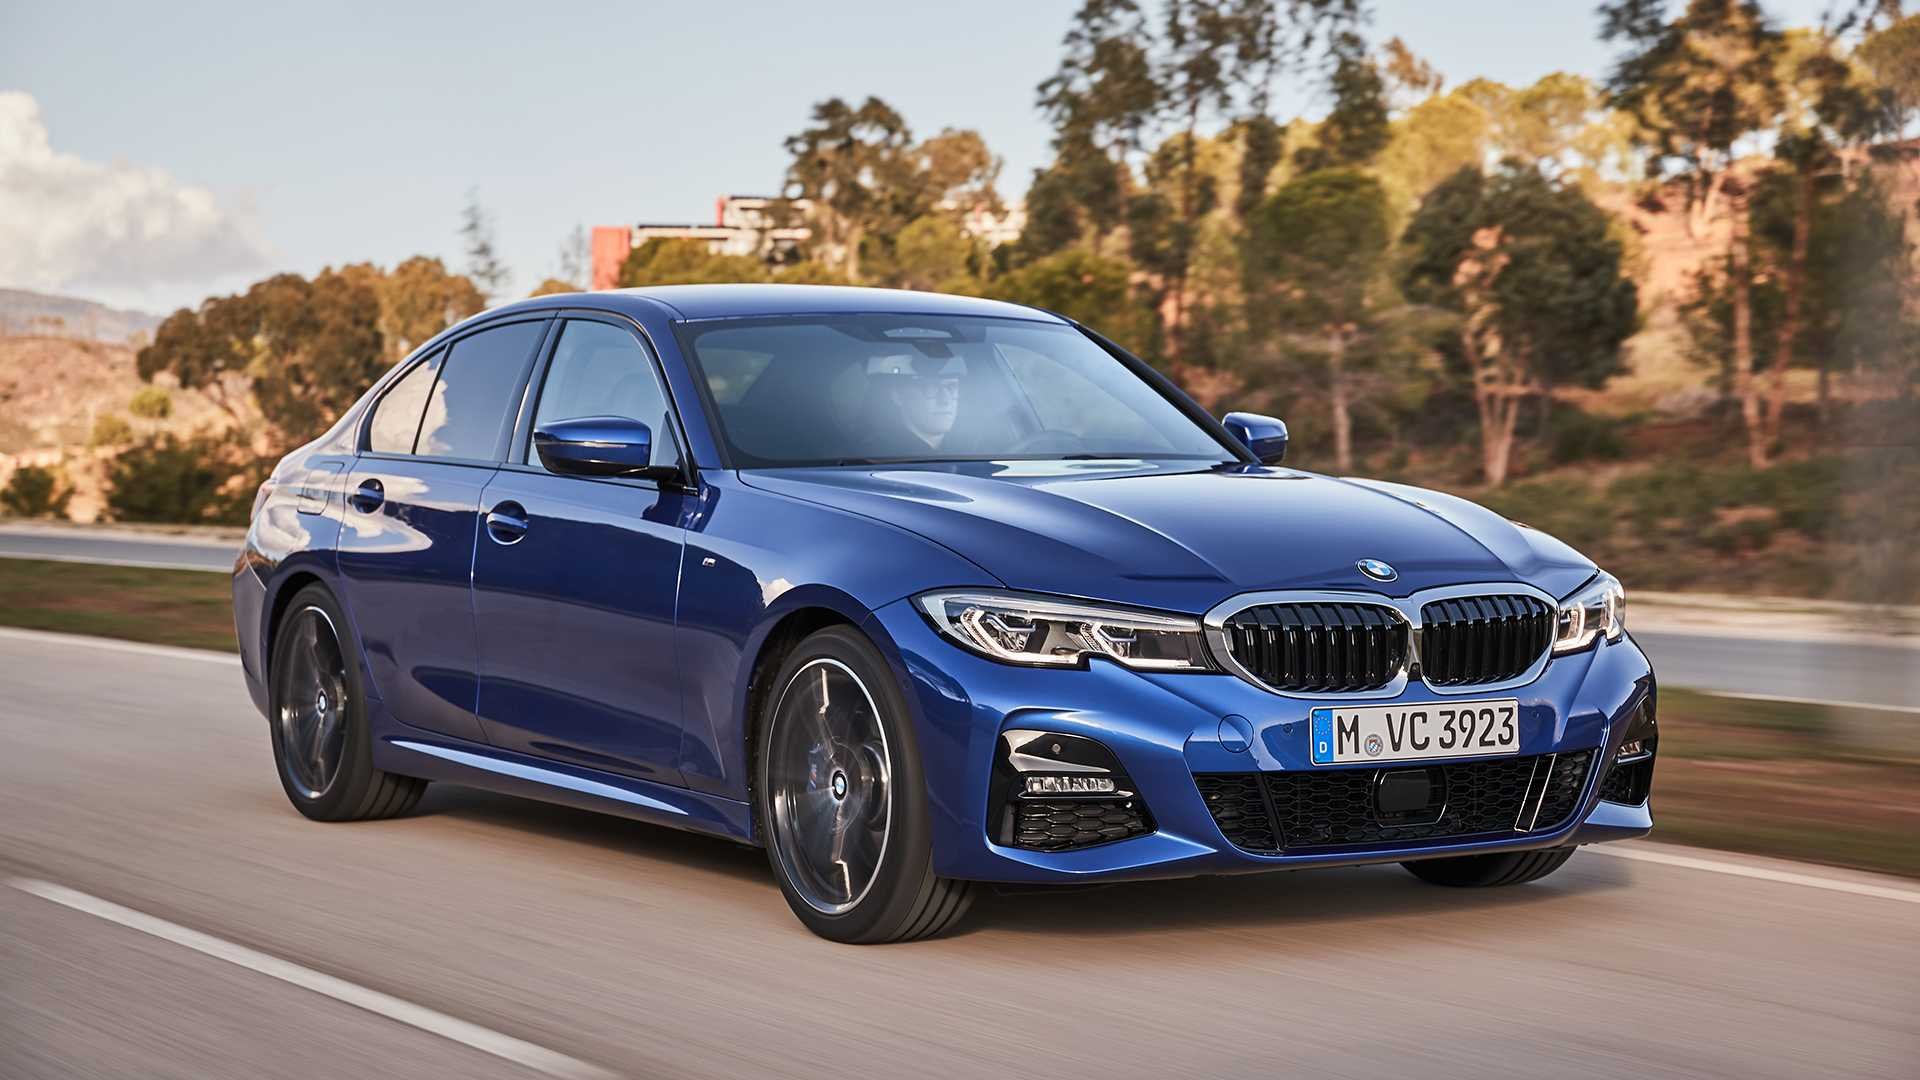 13 All New 2019 Bmw 3 Series Prices for 2019 Bmw 3 Series